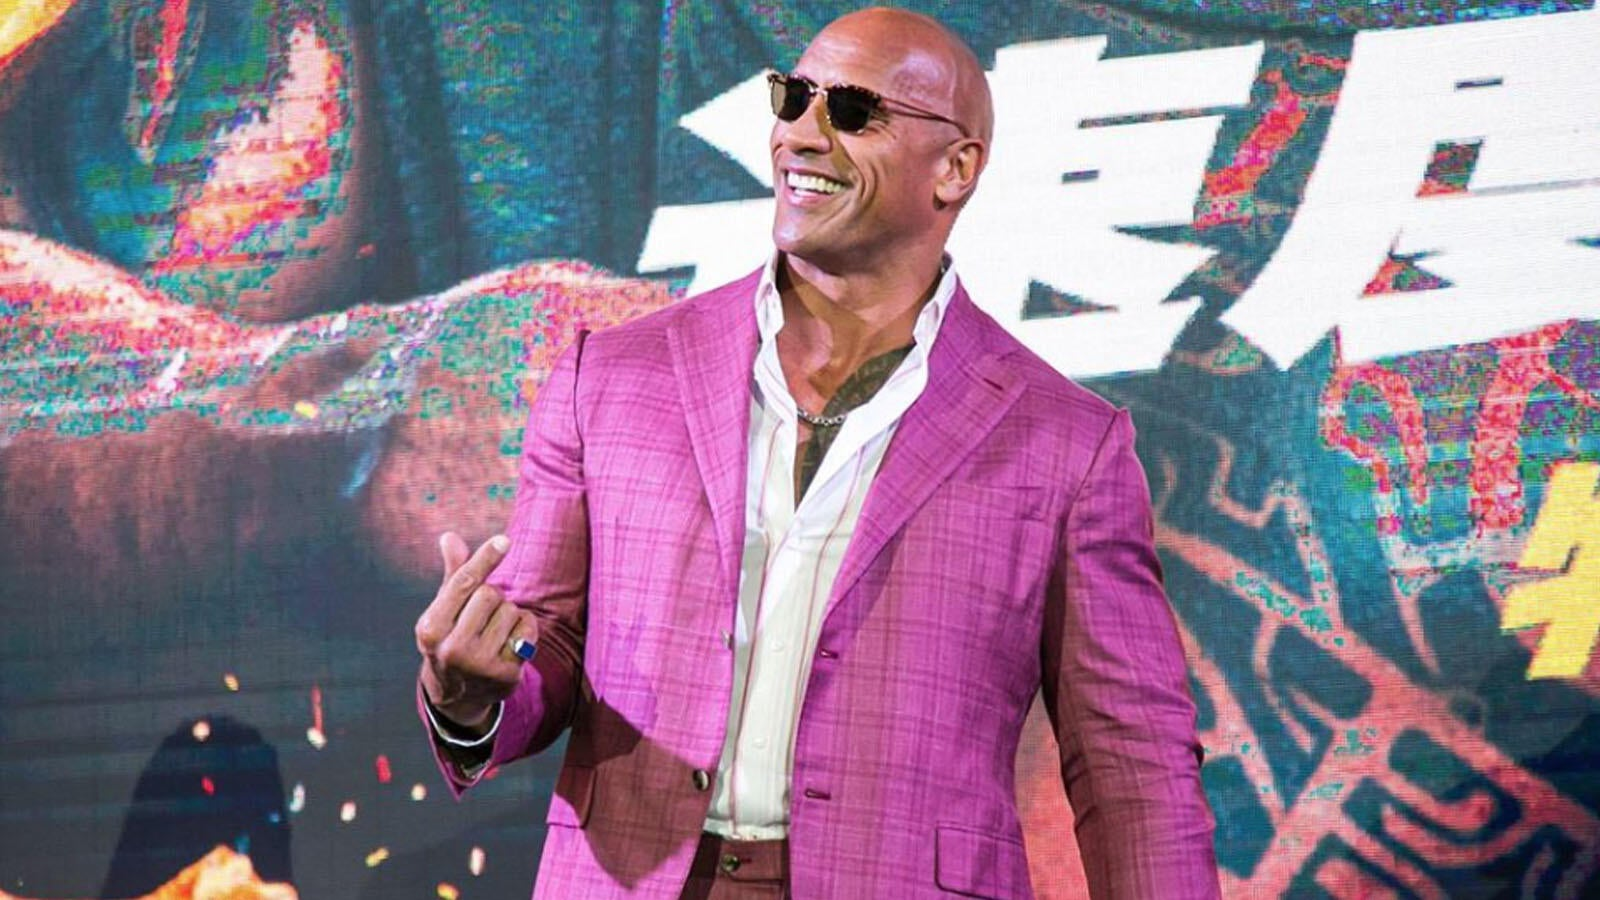 Dwayne Johnson Highest Paid Actor in 2019: Forbes